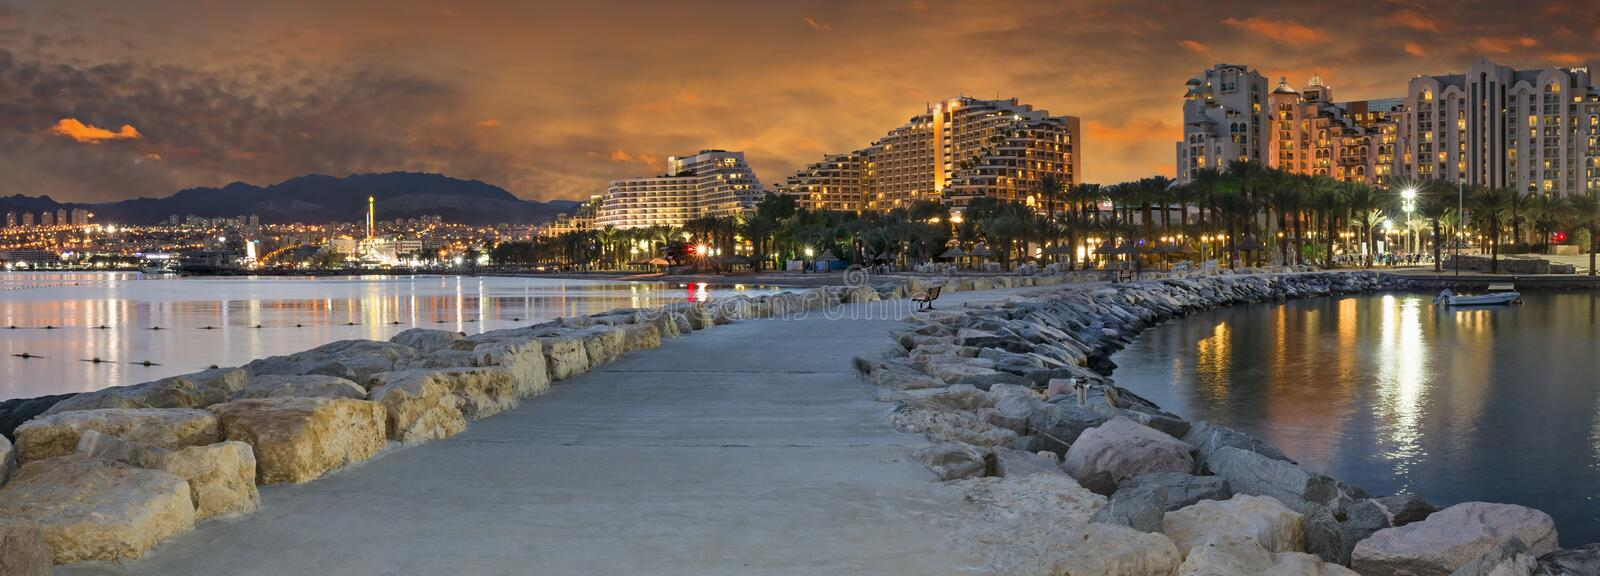 Night panoramic view from a public walking pier in Eilat, Israel stock photos